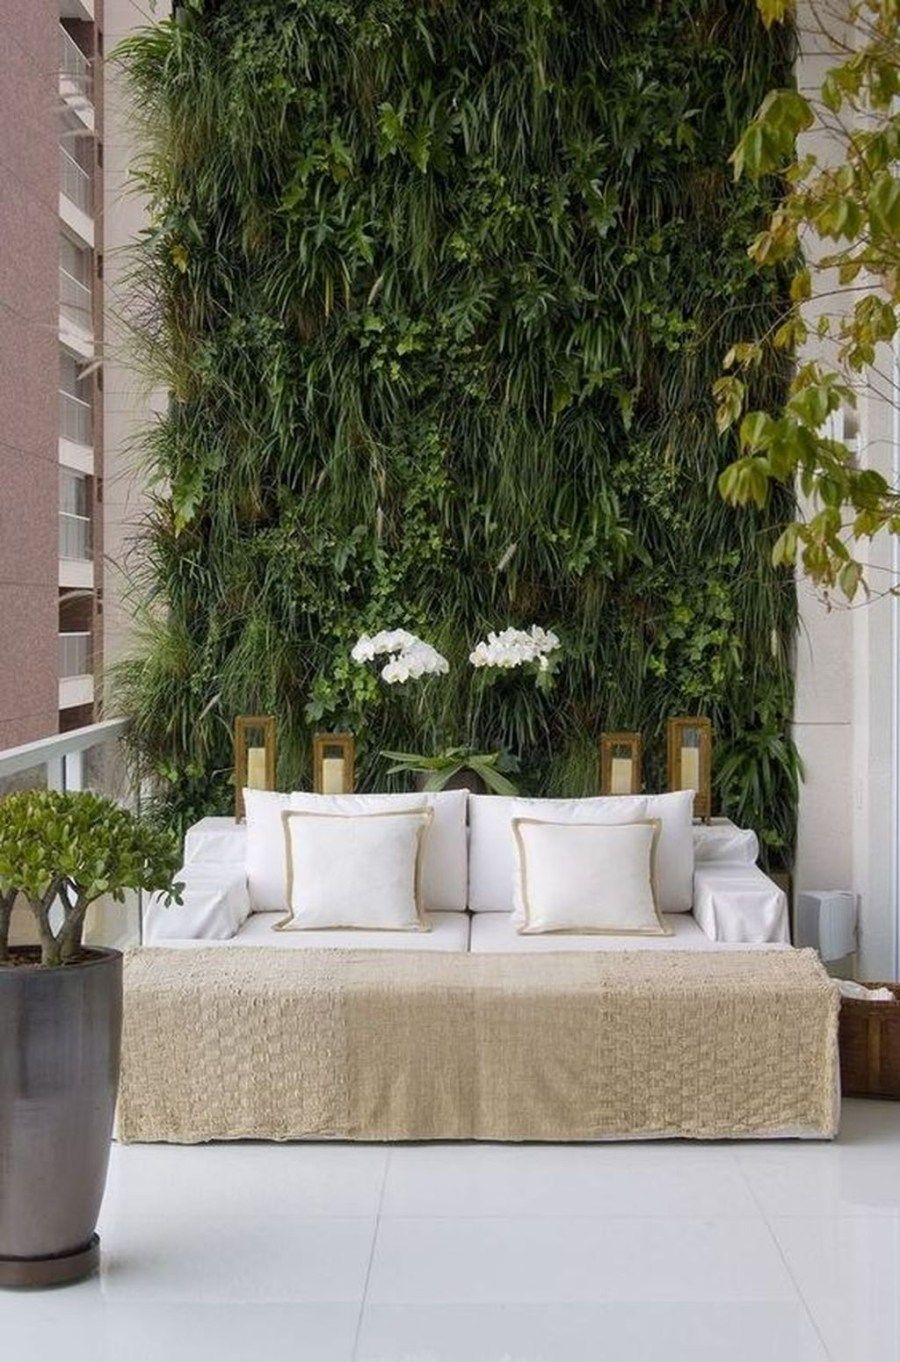 Stunning Living Wall Decor For Indoor And Outdoor 33 Vertical